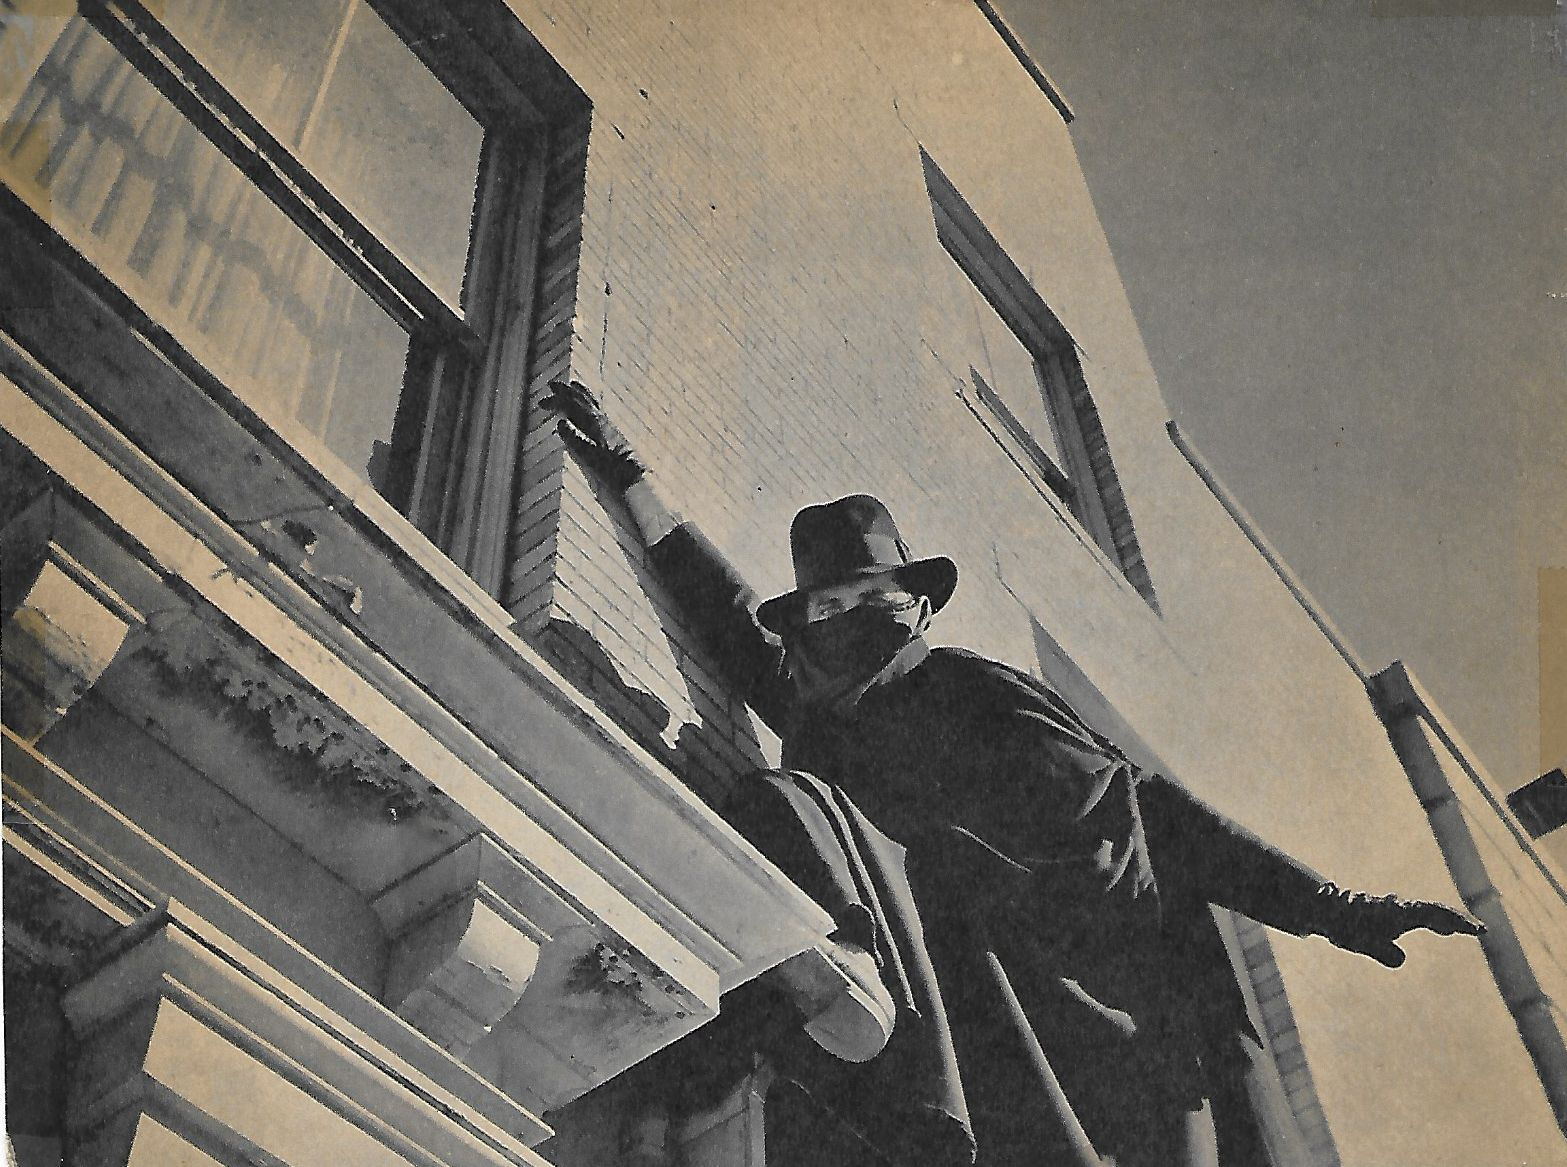 Victor Jory in The Shadow (1940)